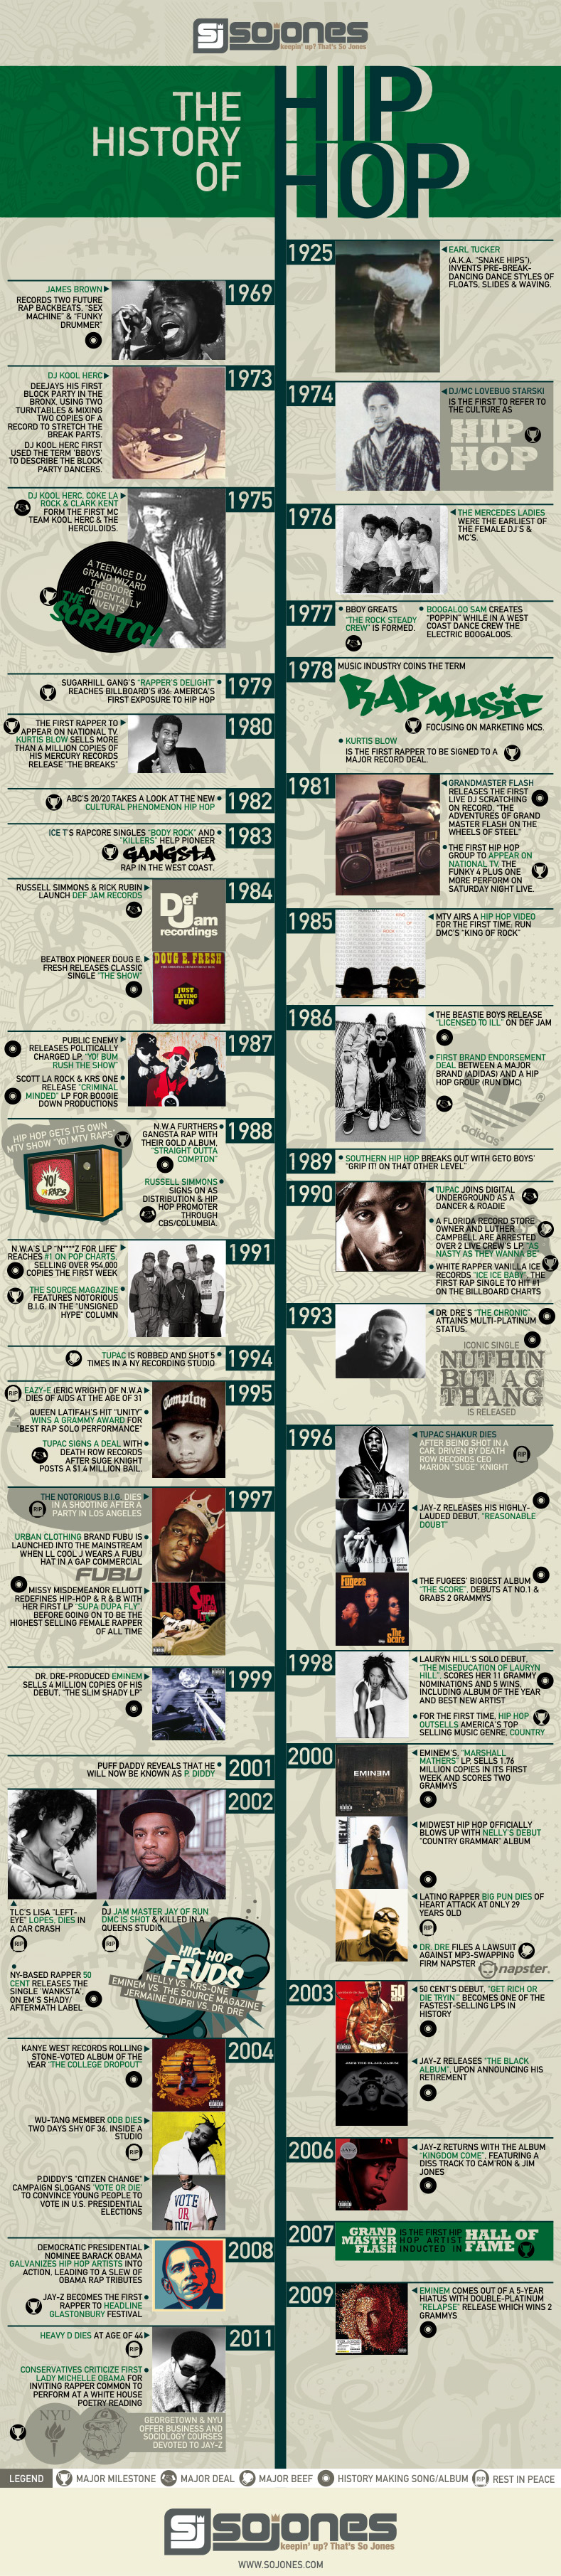 History and Timeline of Hip Hop